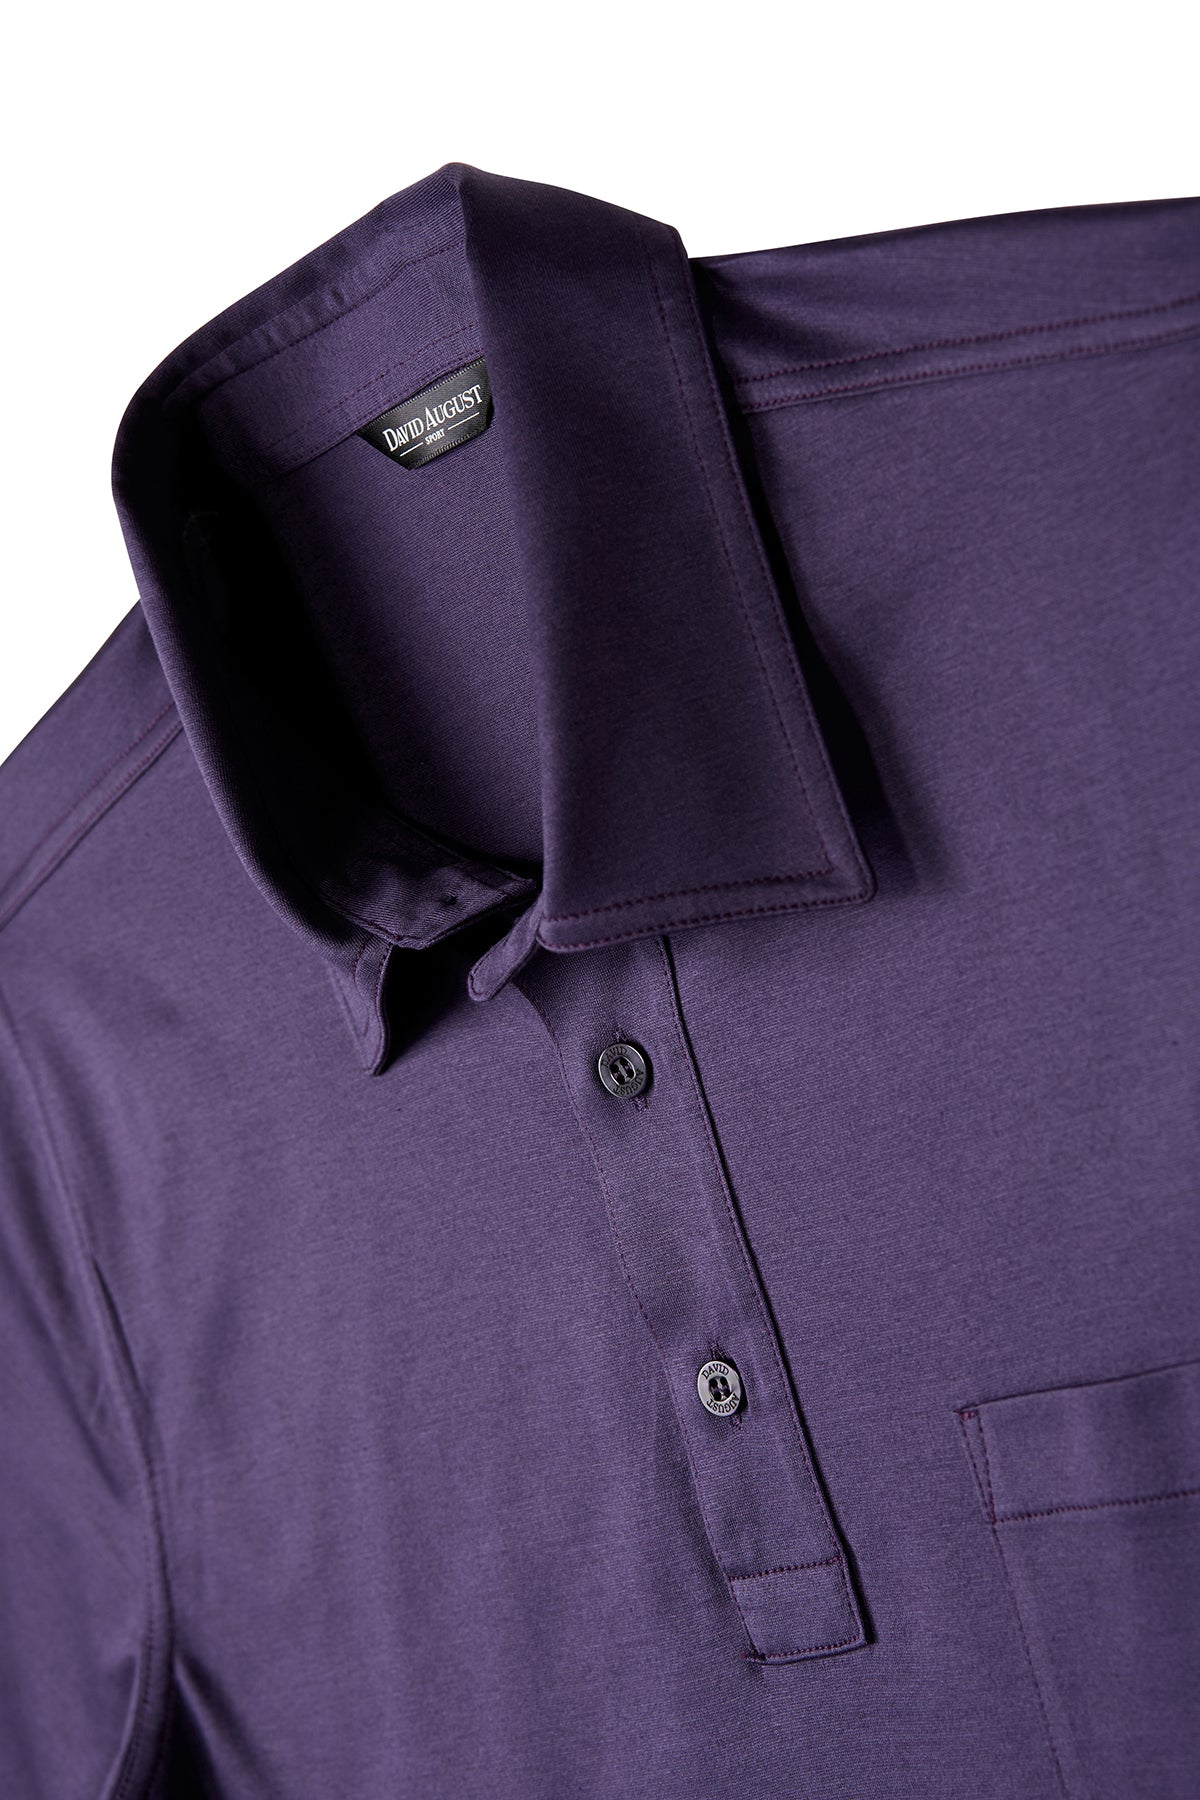 David August Mercerized Cotton Polo in Plum